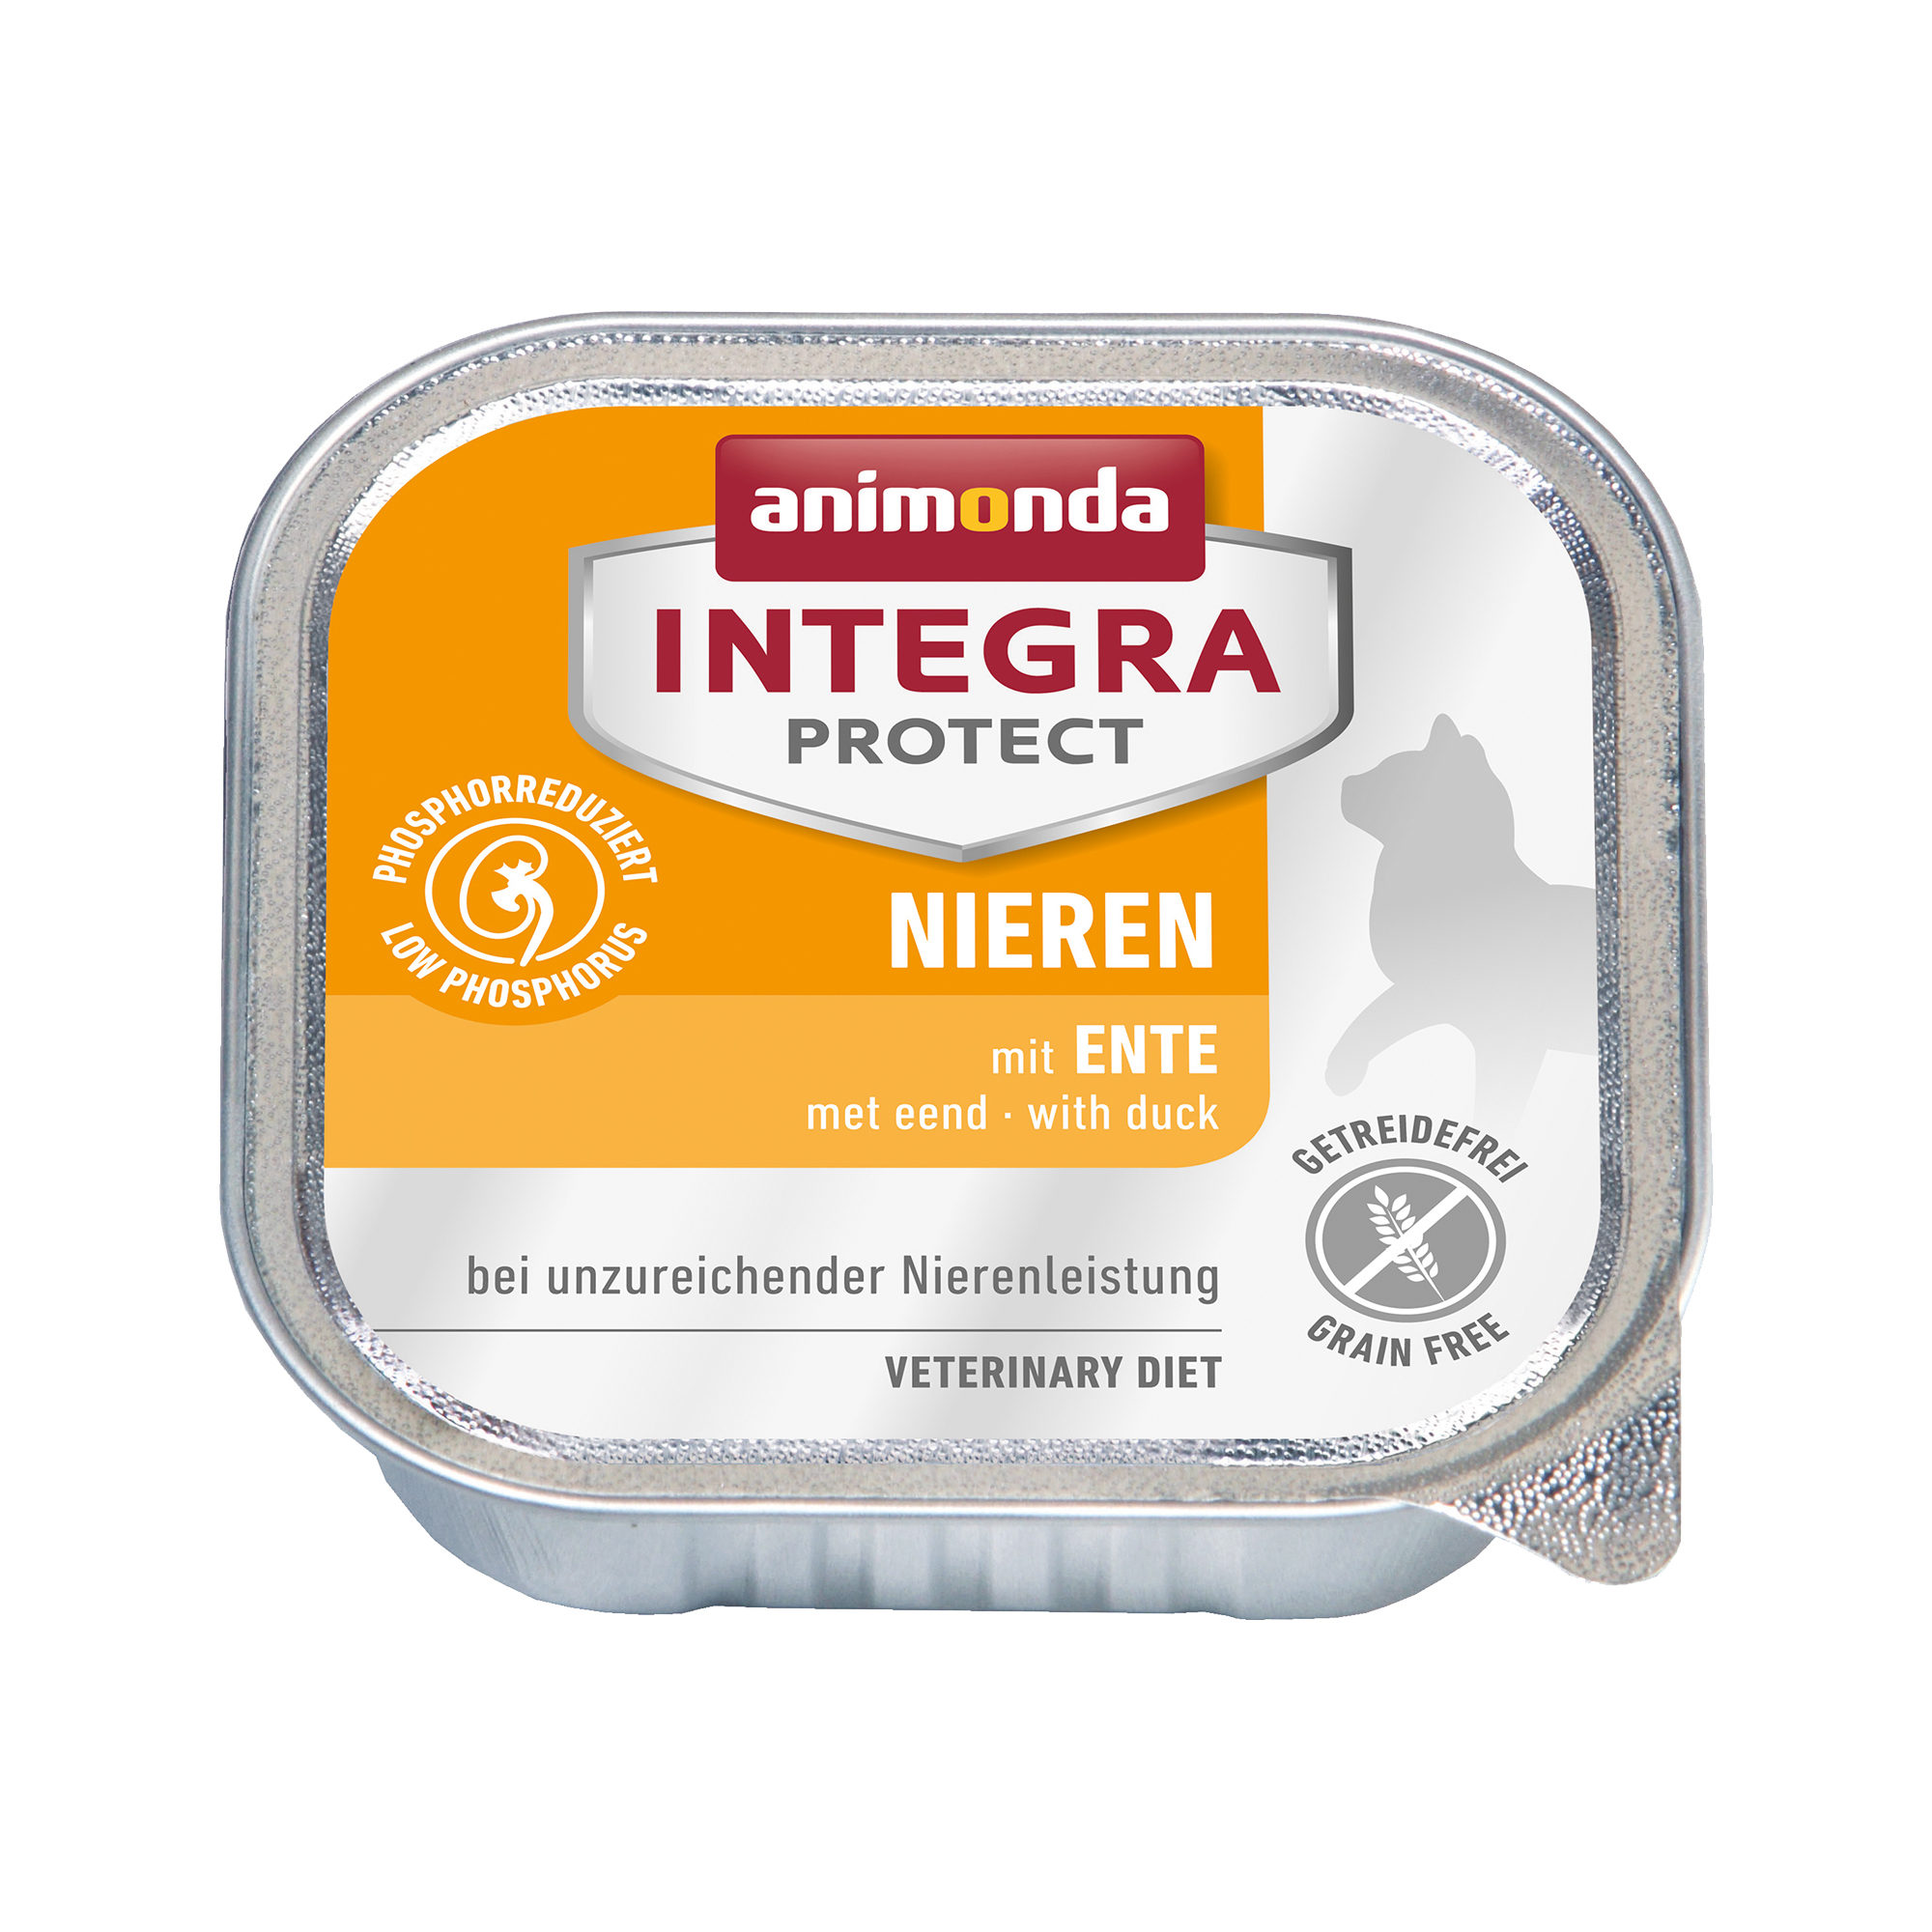 Animonda Integra Protect Cat Nieren Ente